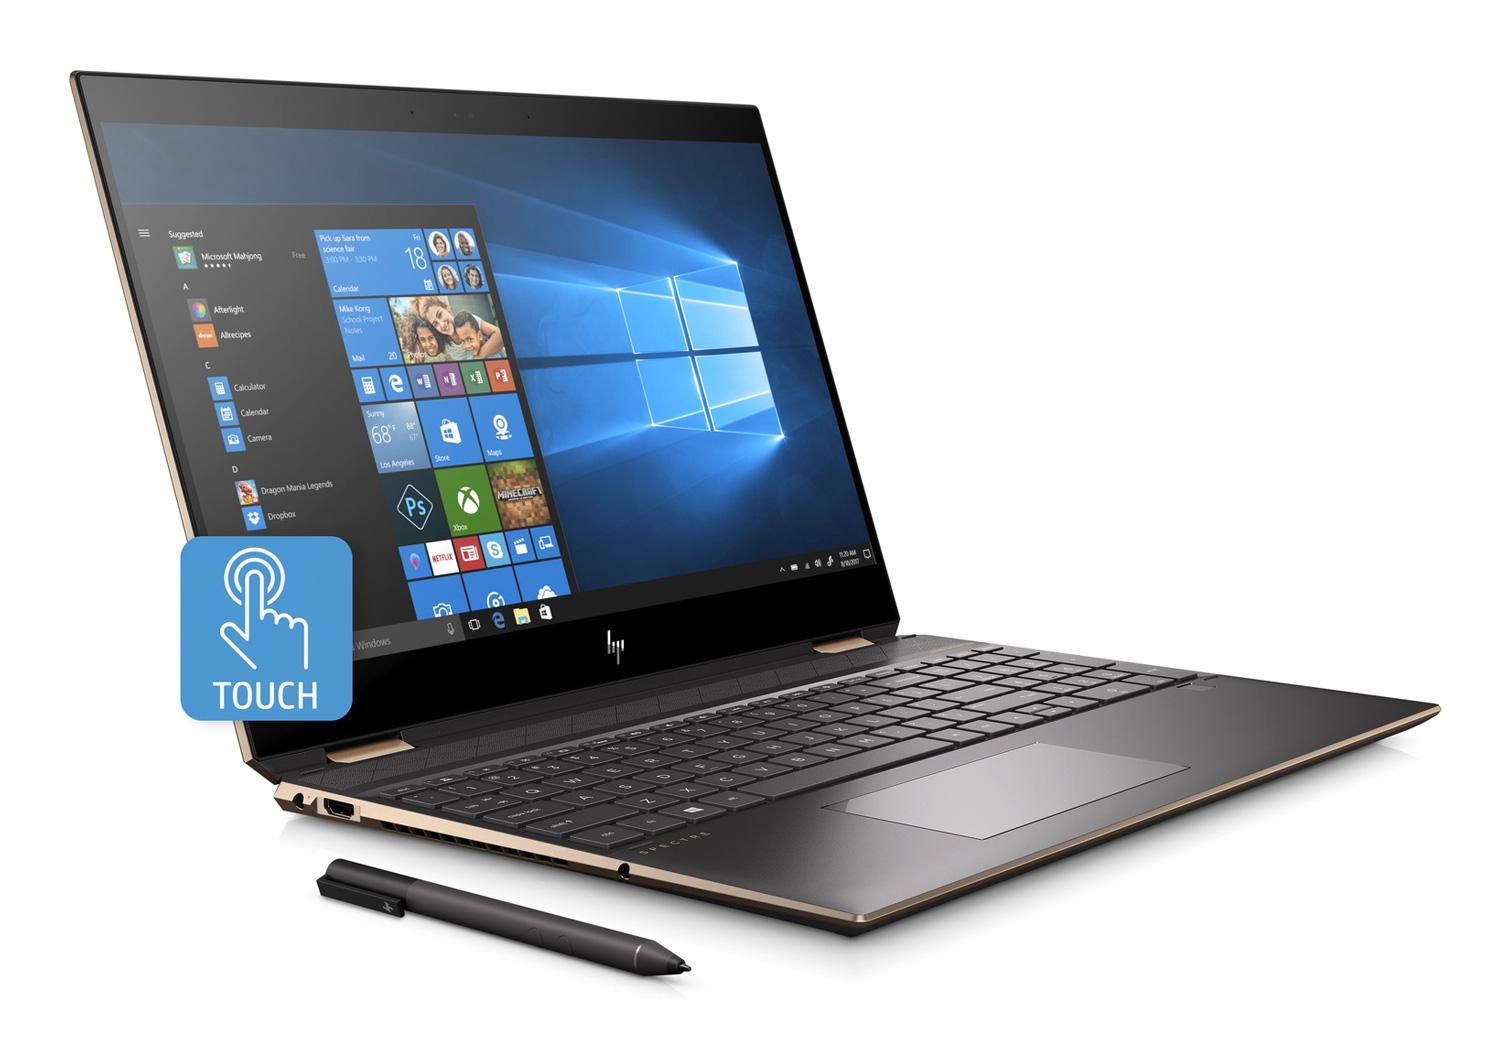 Ordinateur portable HP Spectre x360 15-df0007nf Cendre 4K Tactile - Hexa Core, GTX 1050 Ti - photo 2